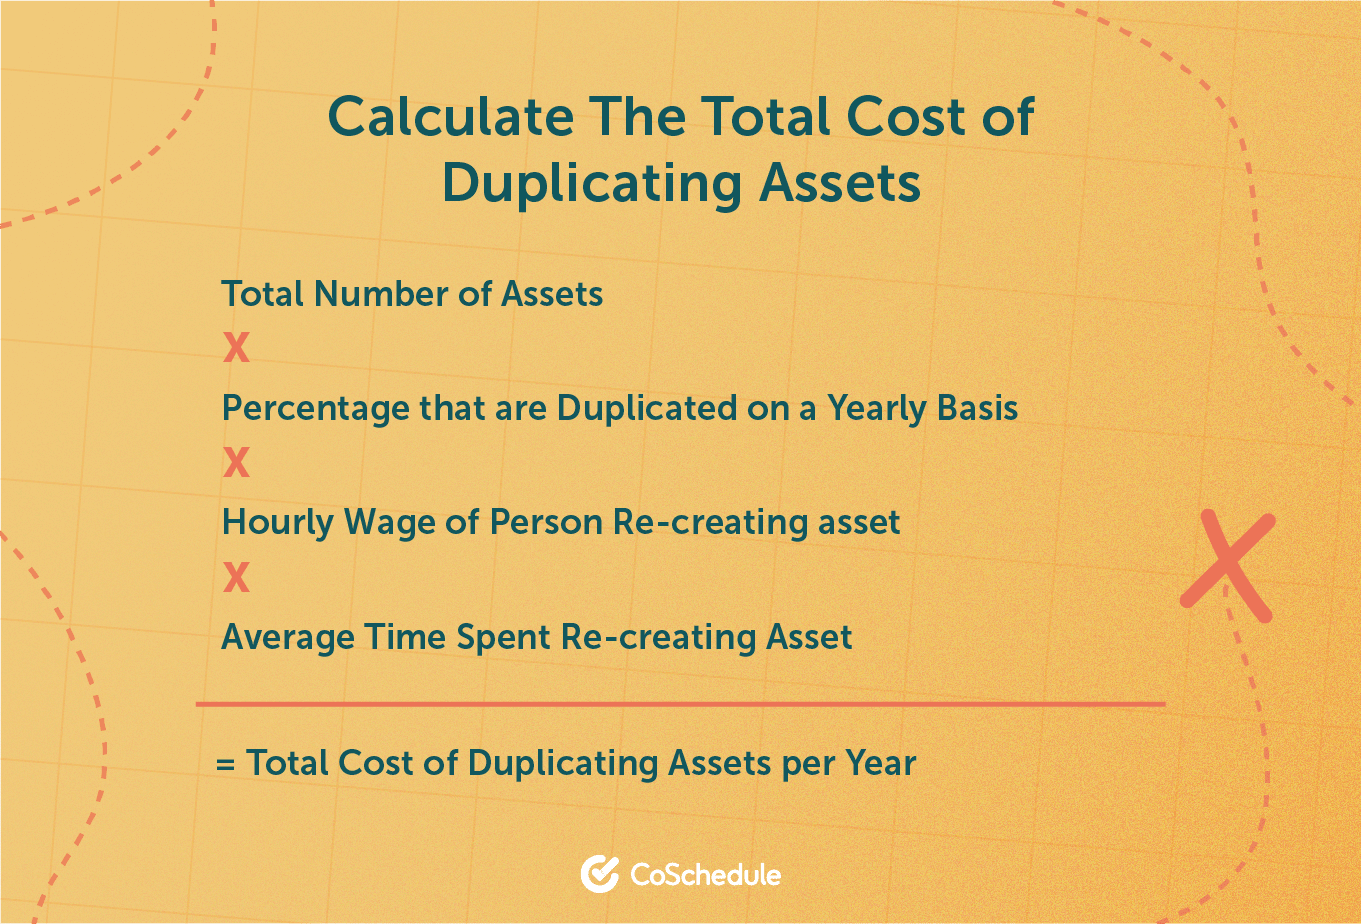 Calculate cost of duplicating assets.